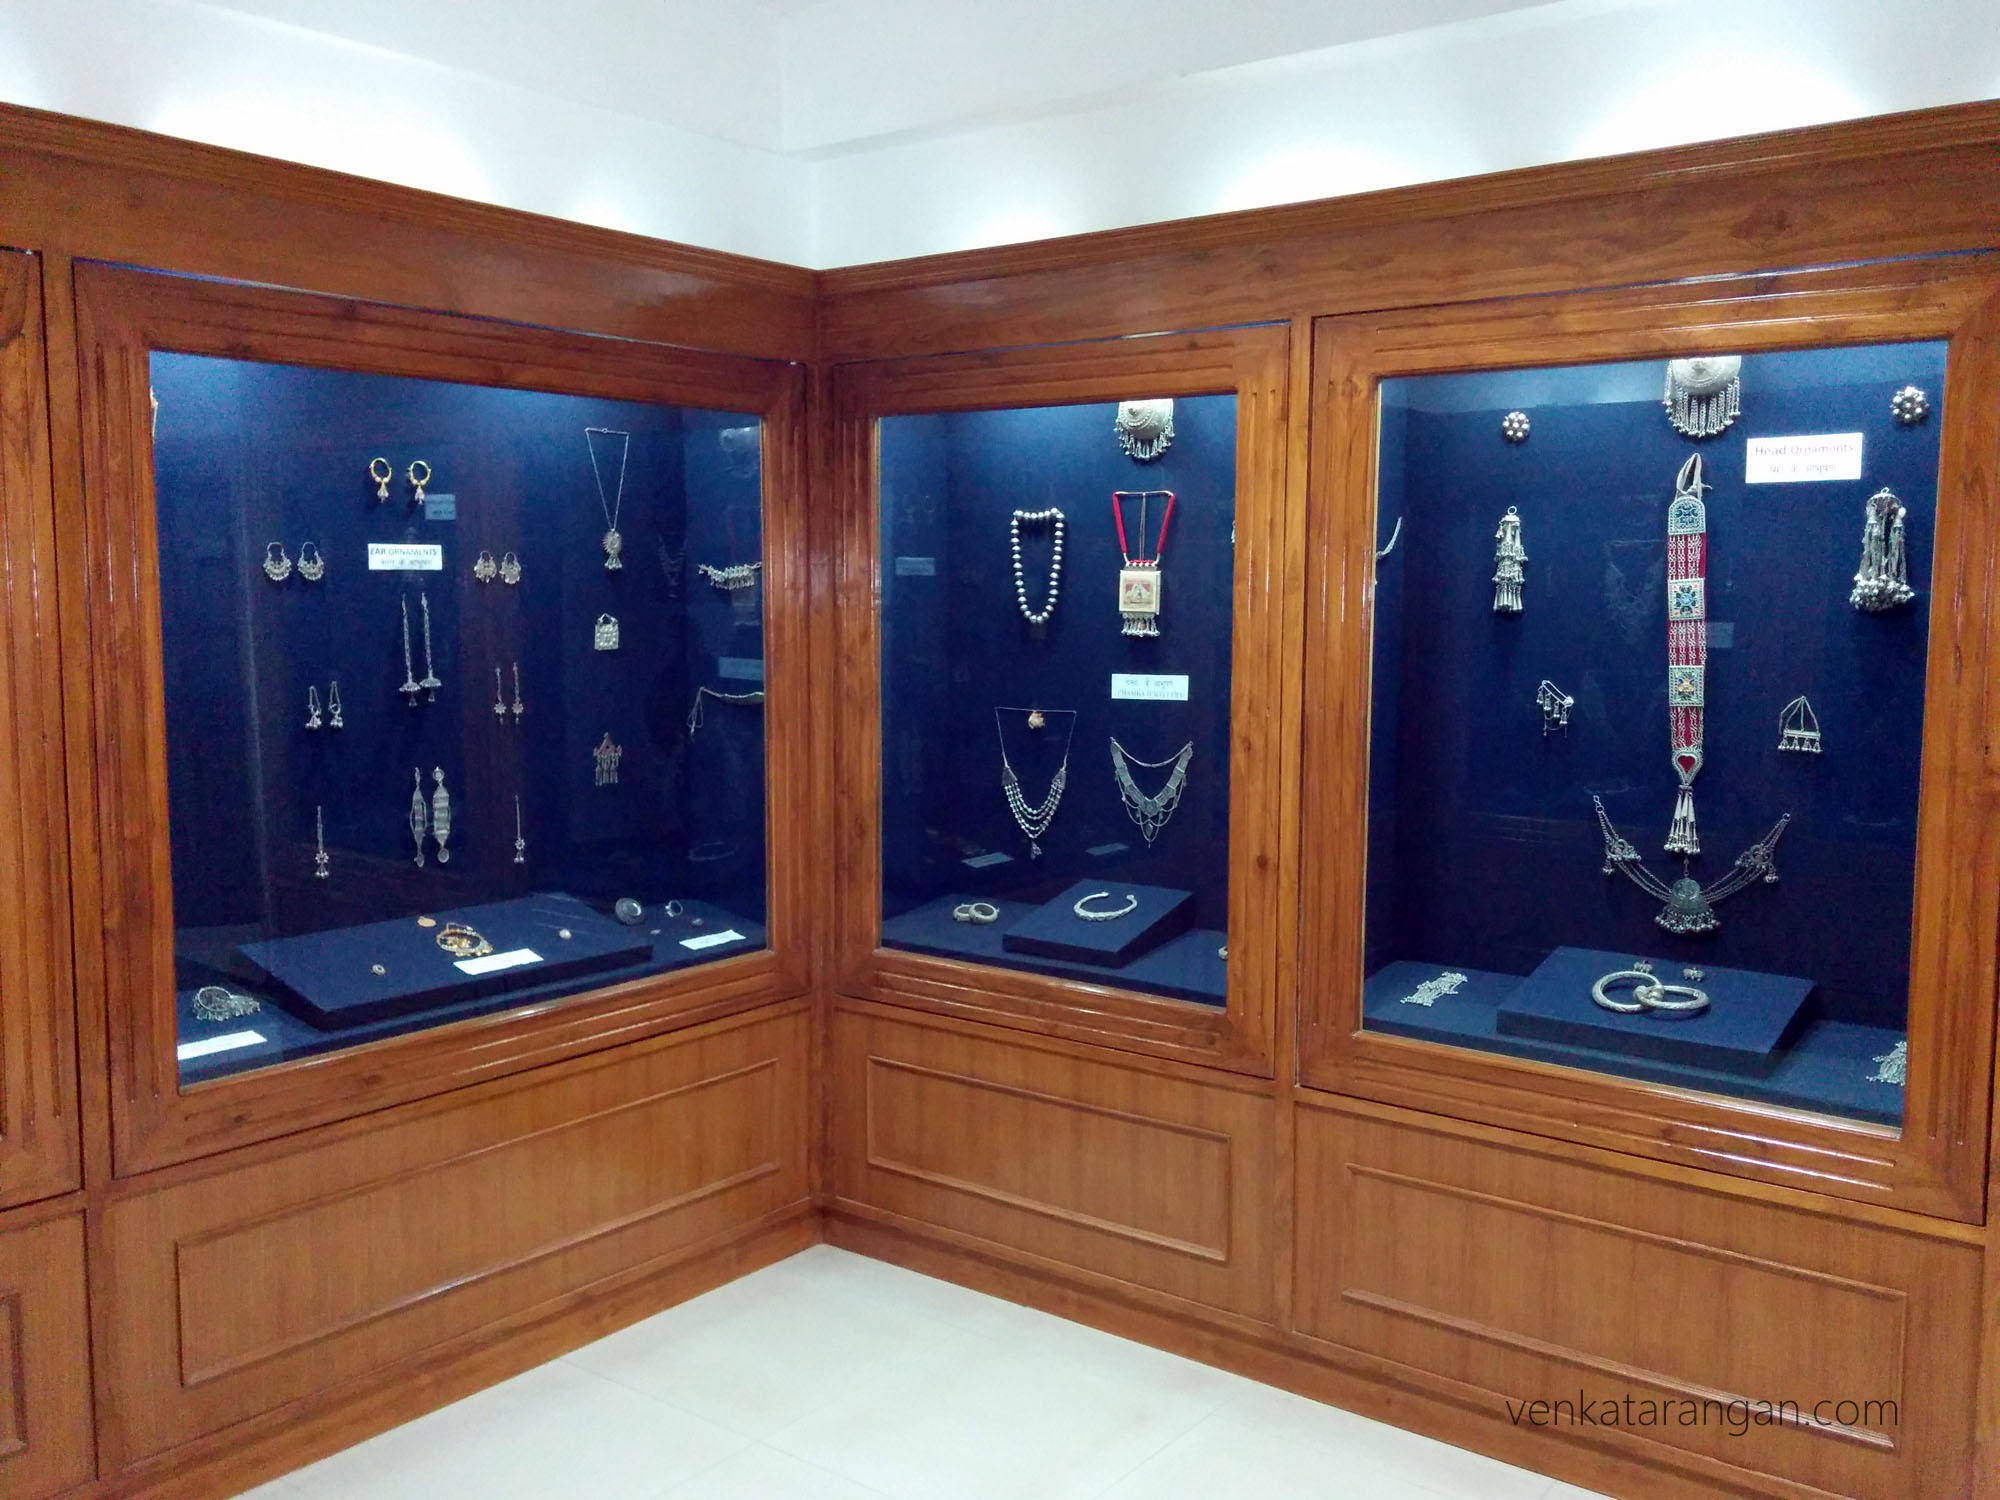 Traditional jewellery of Himachal state on display